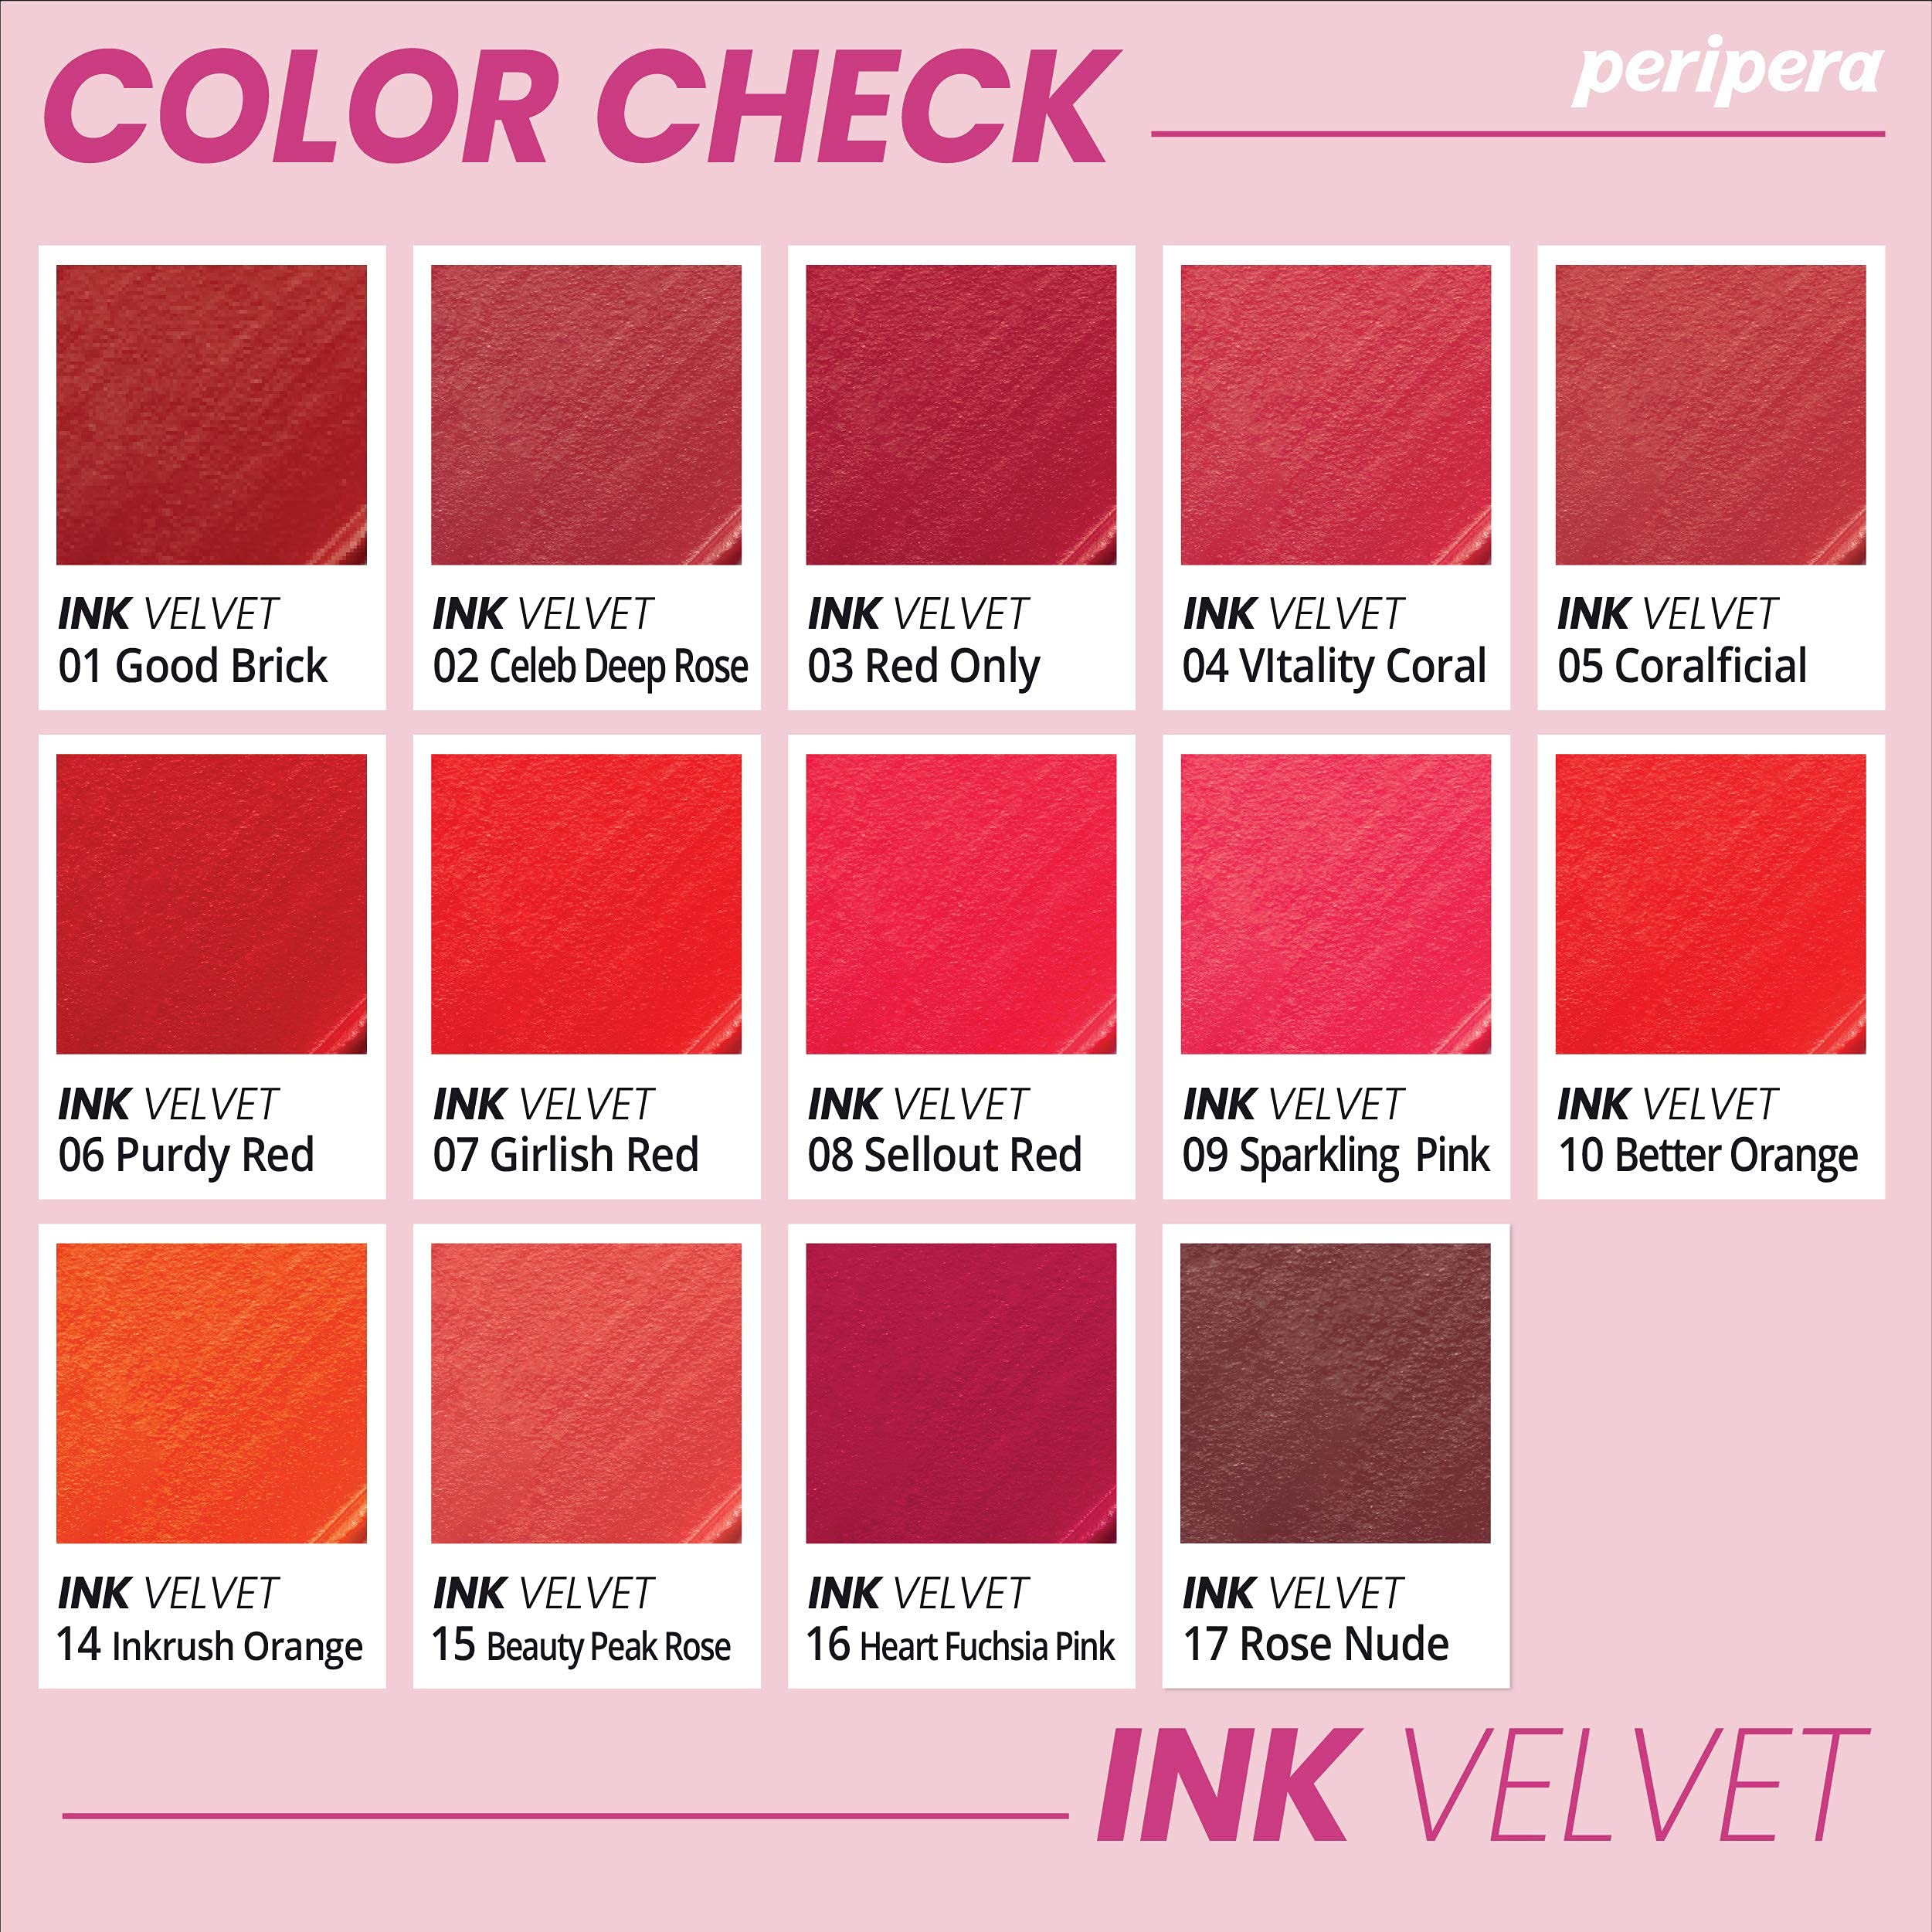 Peripera Ink the Velvet Lip Tint - You Are The Apple Of